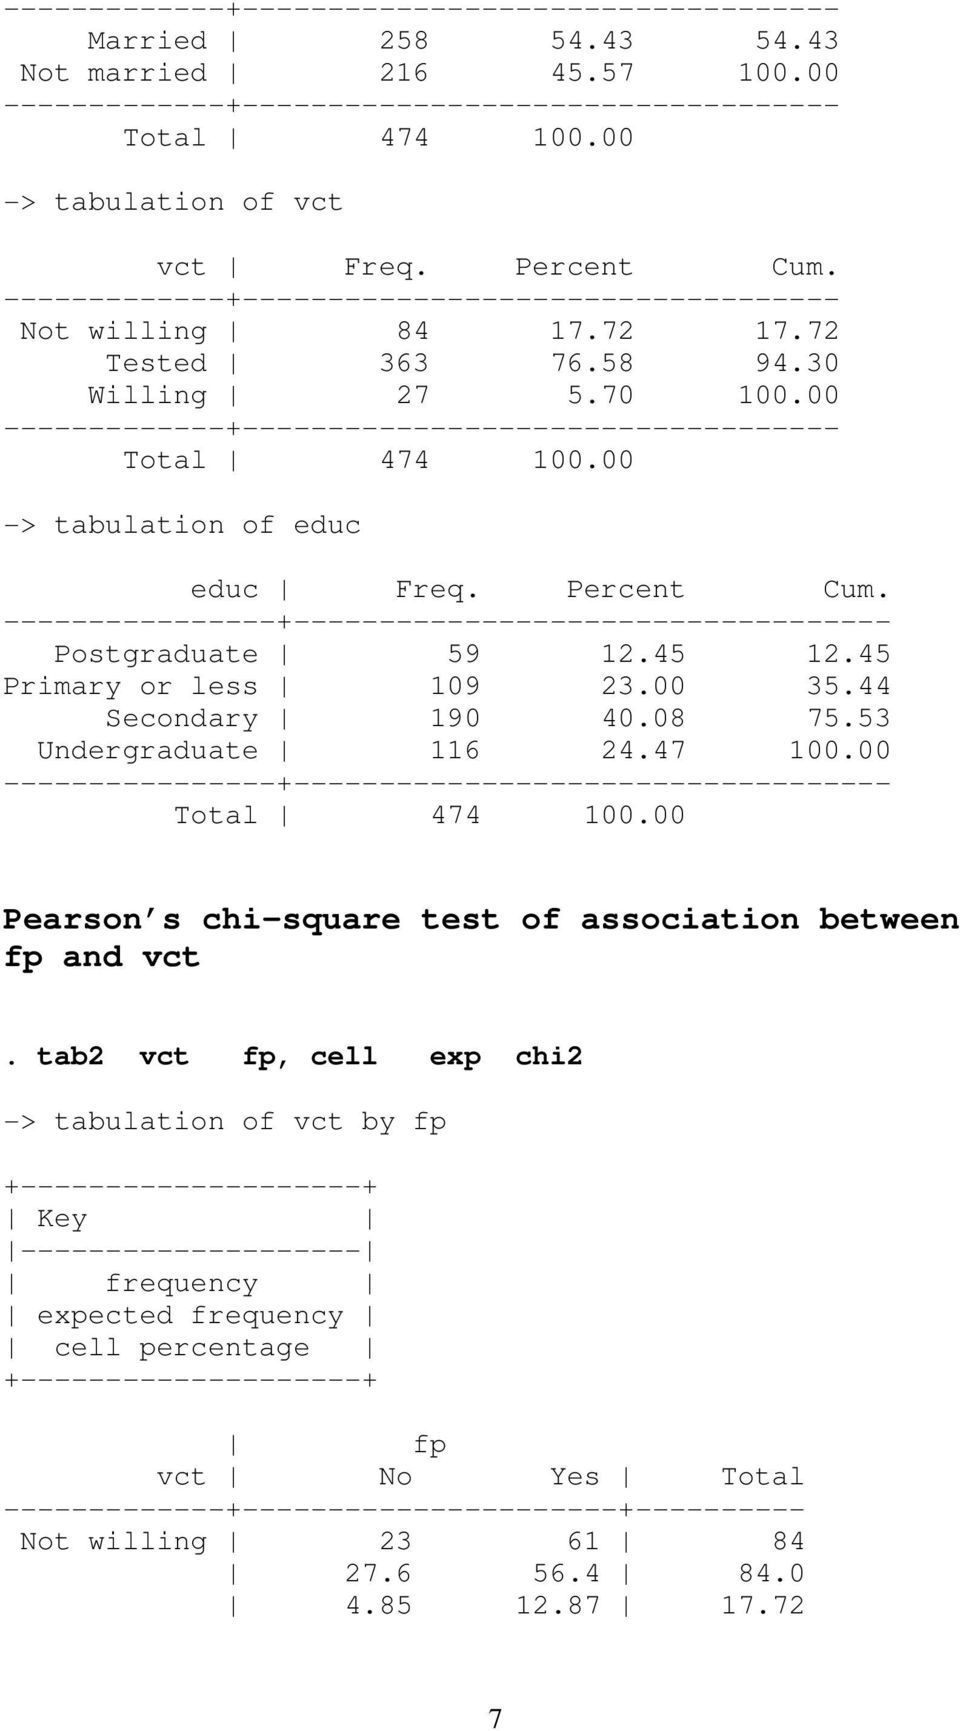 44 Secondary 190 40.08 75.53 Undergraduate 116 24.47 100.00 ---- Total 474 100.00 Pearson s chi-square test of association between fp and vct.